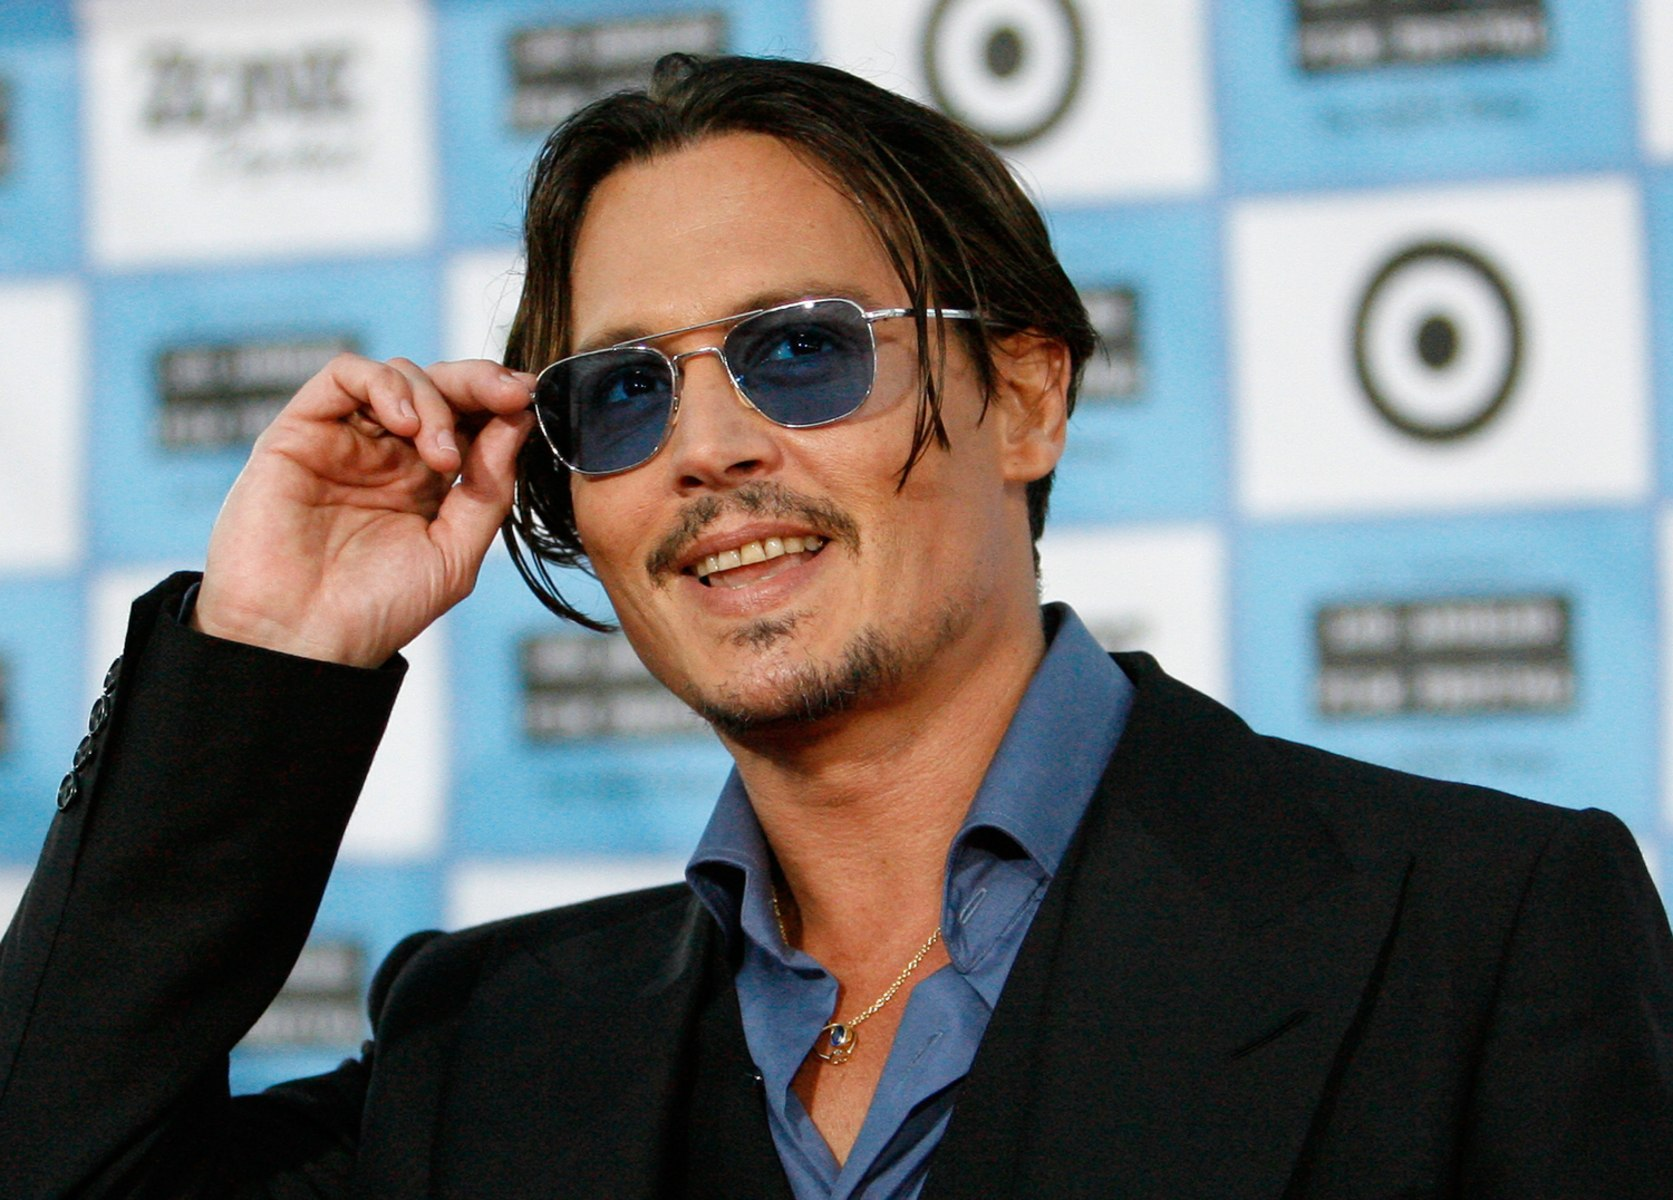 Johnny Depp is engaged, he confirms to TODAY's Savannah ...